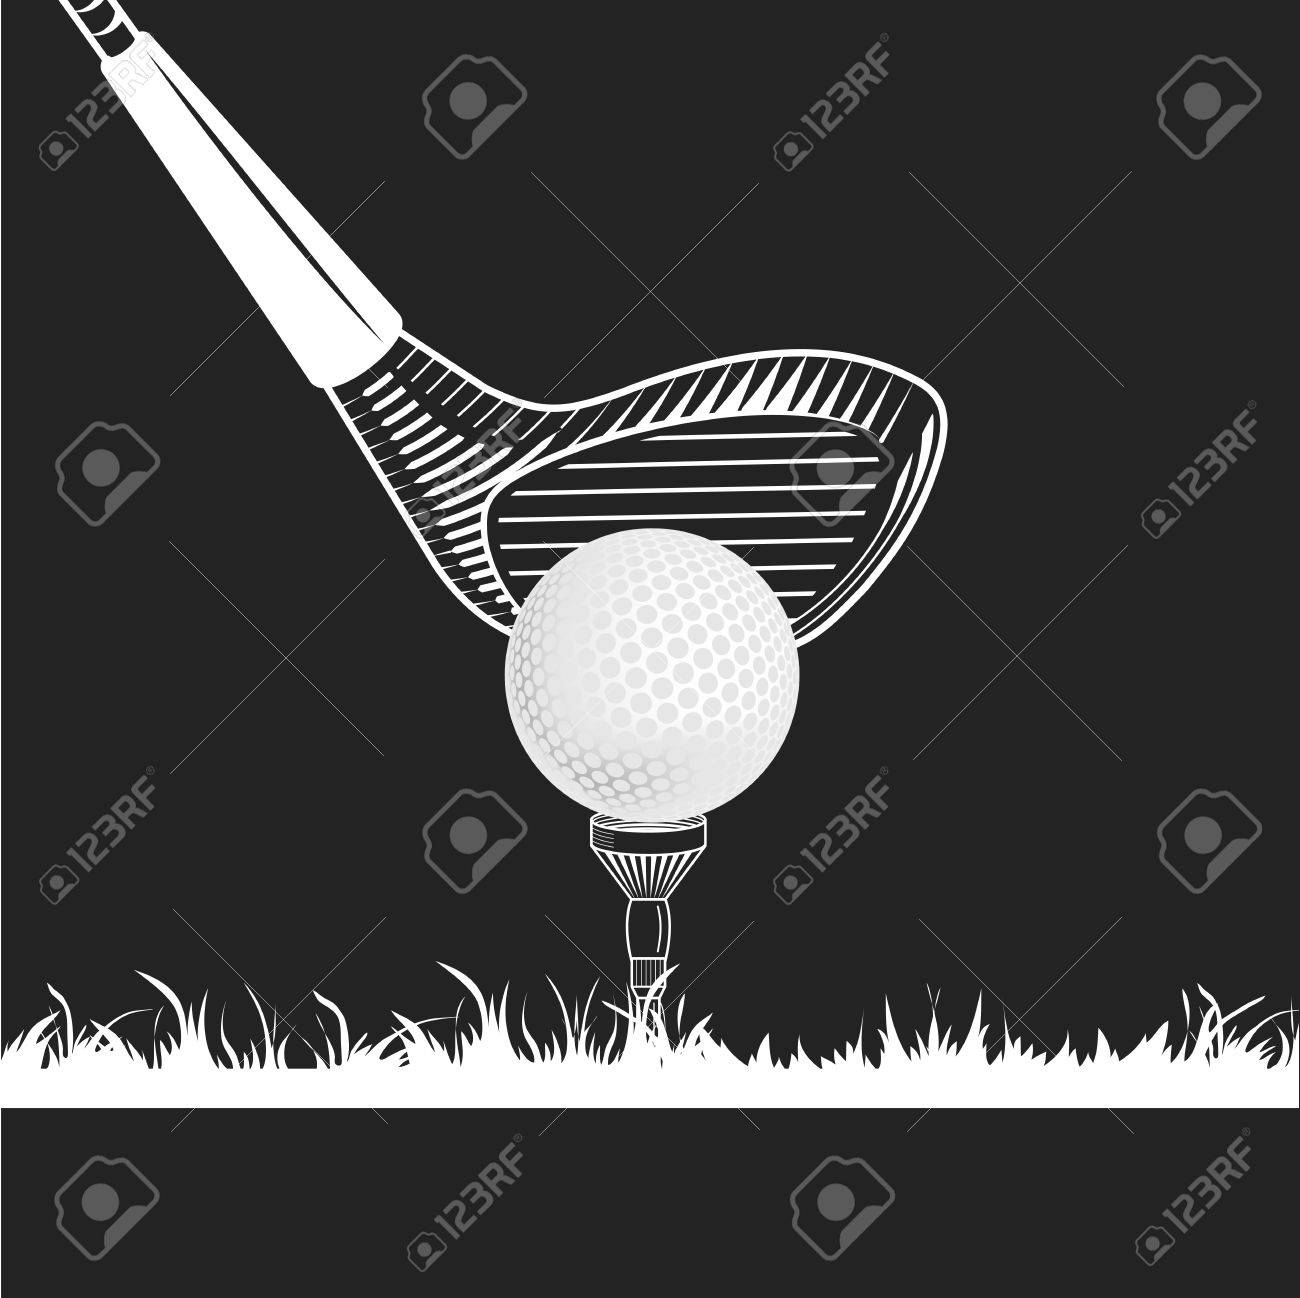 Golf Club Close Up Golf Club Ball Tee Grass White Color On Royalty Free Cliparts Vectors And Stock Illustration Image 54971345